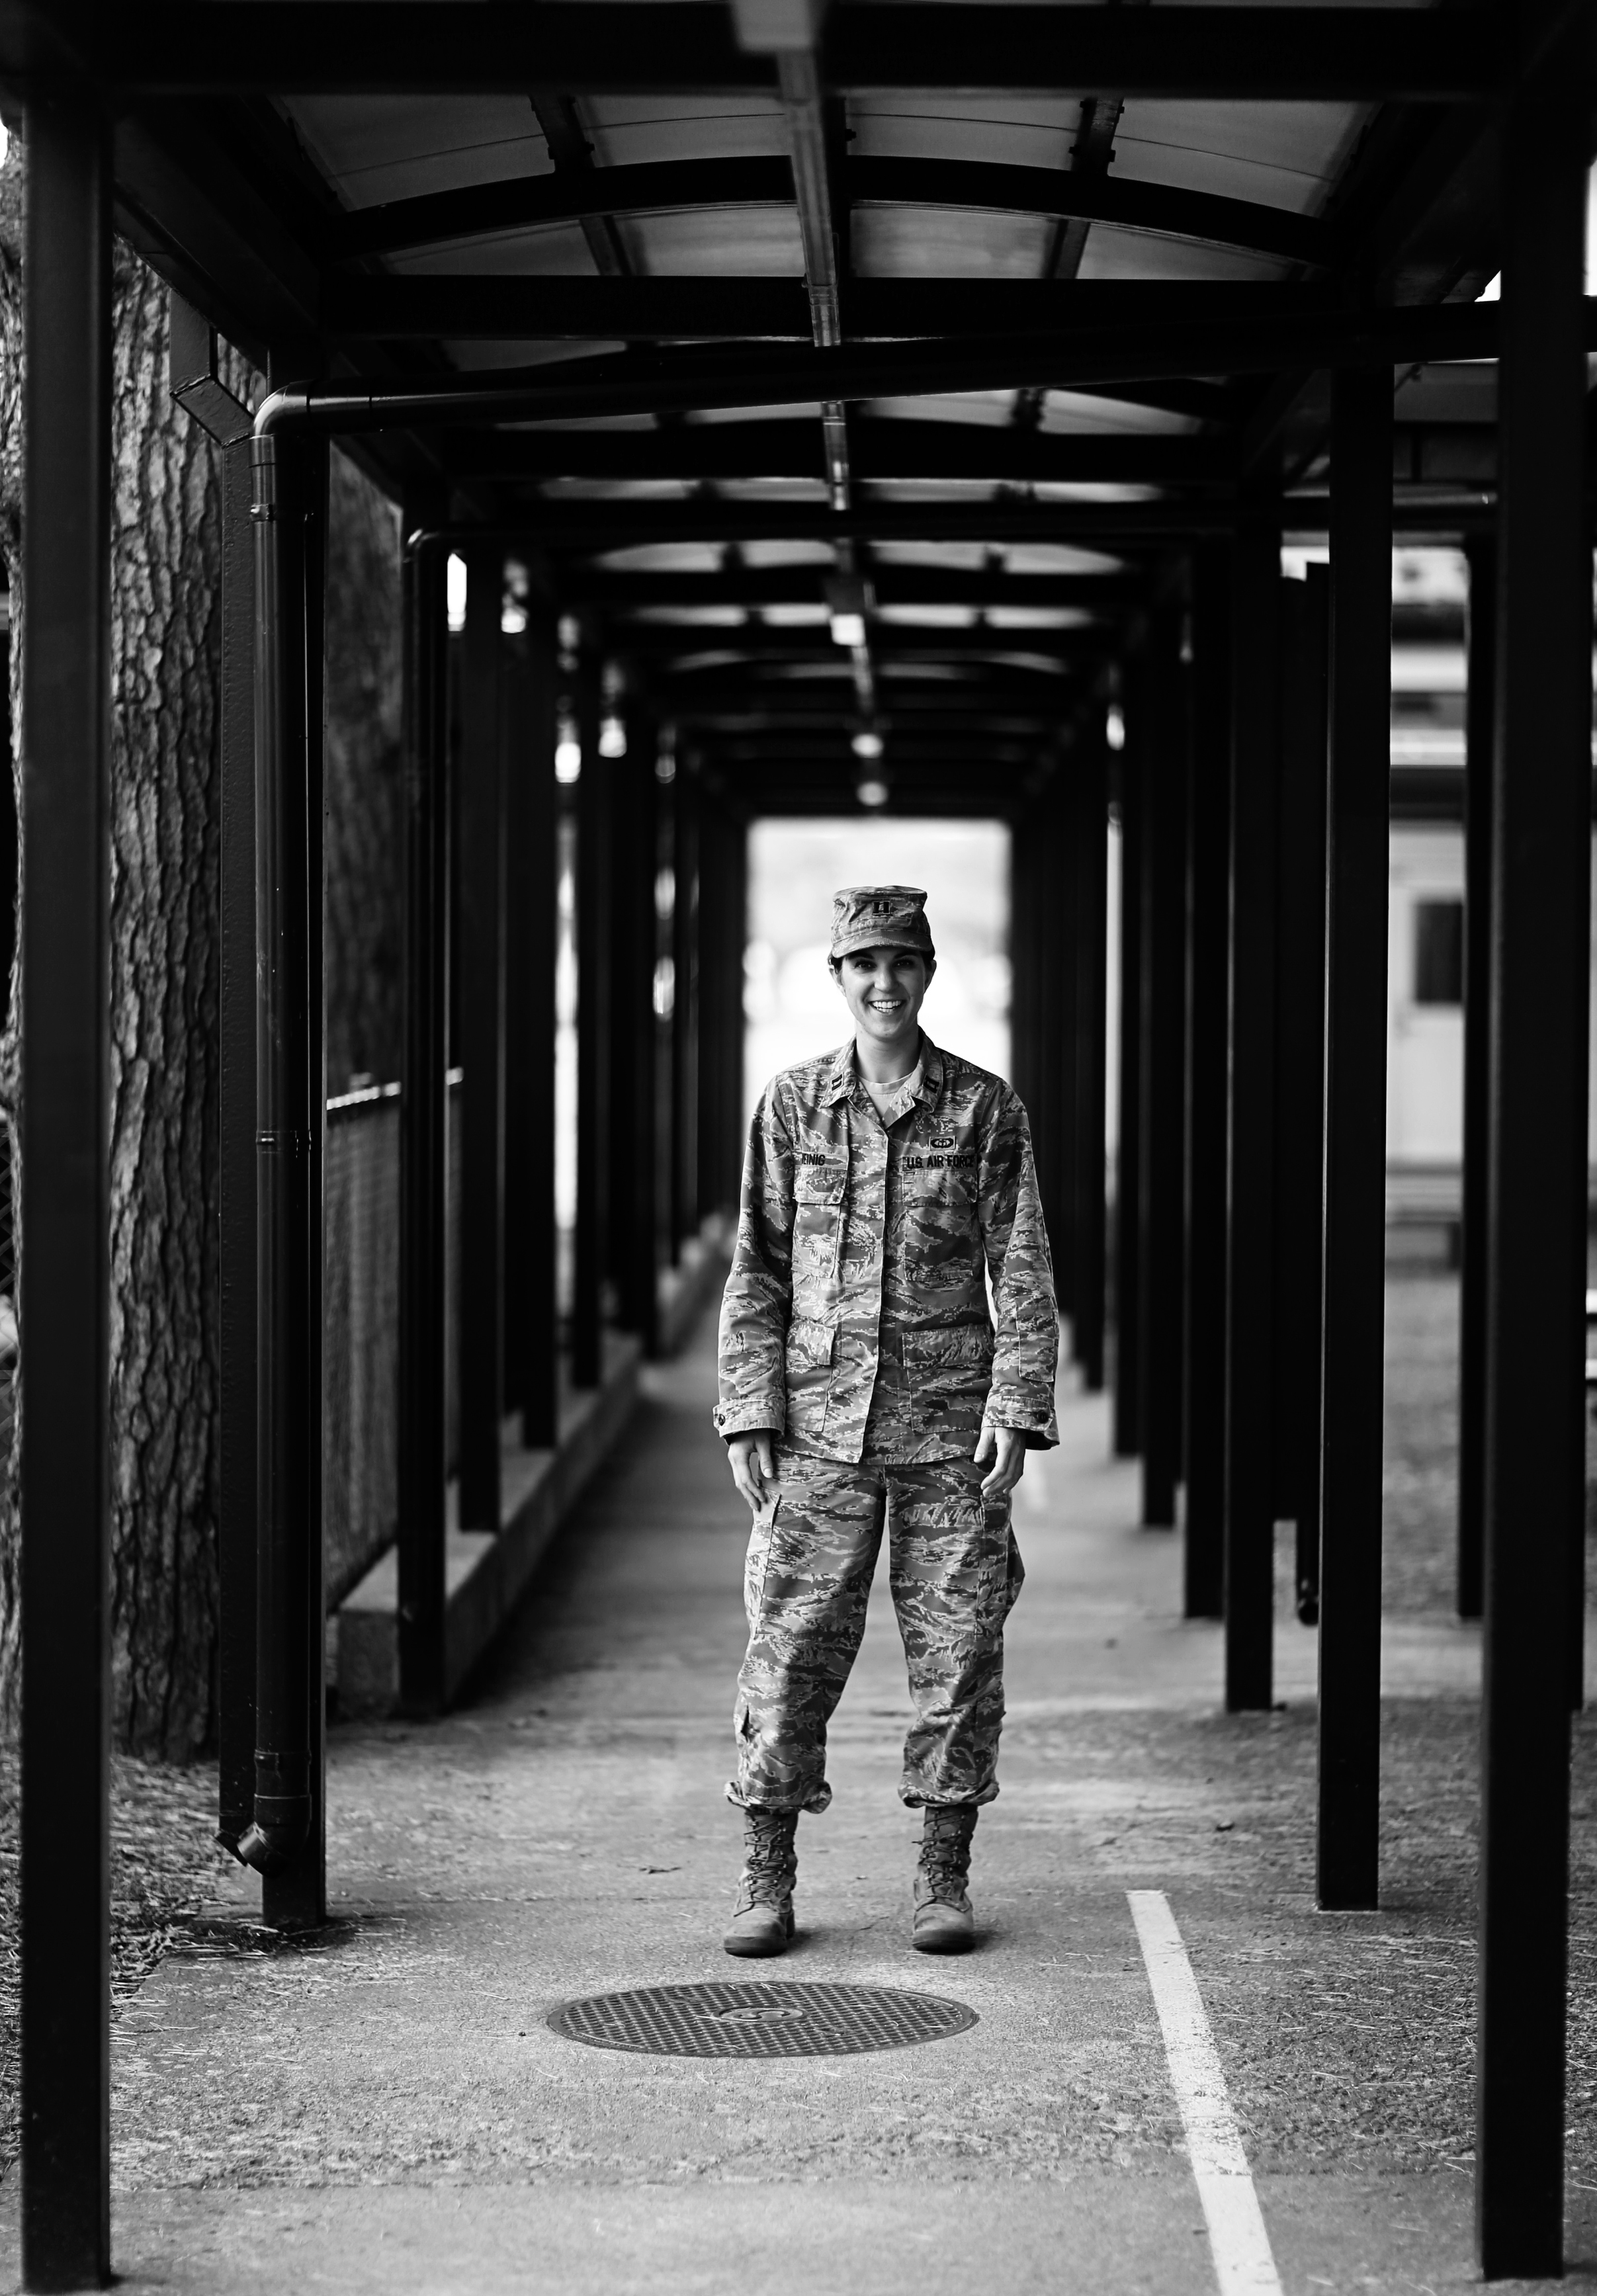 29. Does it matter that you are a female? If yes, why/what?It does! I believe in strength in diversity whether that be by gender, socioeconomic background, ethnicity, etc. The military is male dominated, but the more diverse we can become, I think the stronger we will become. -